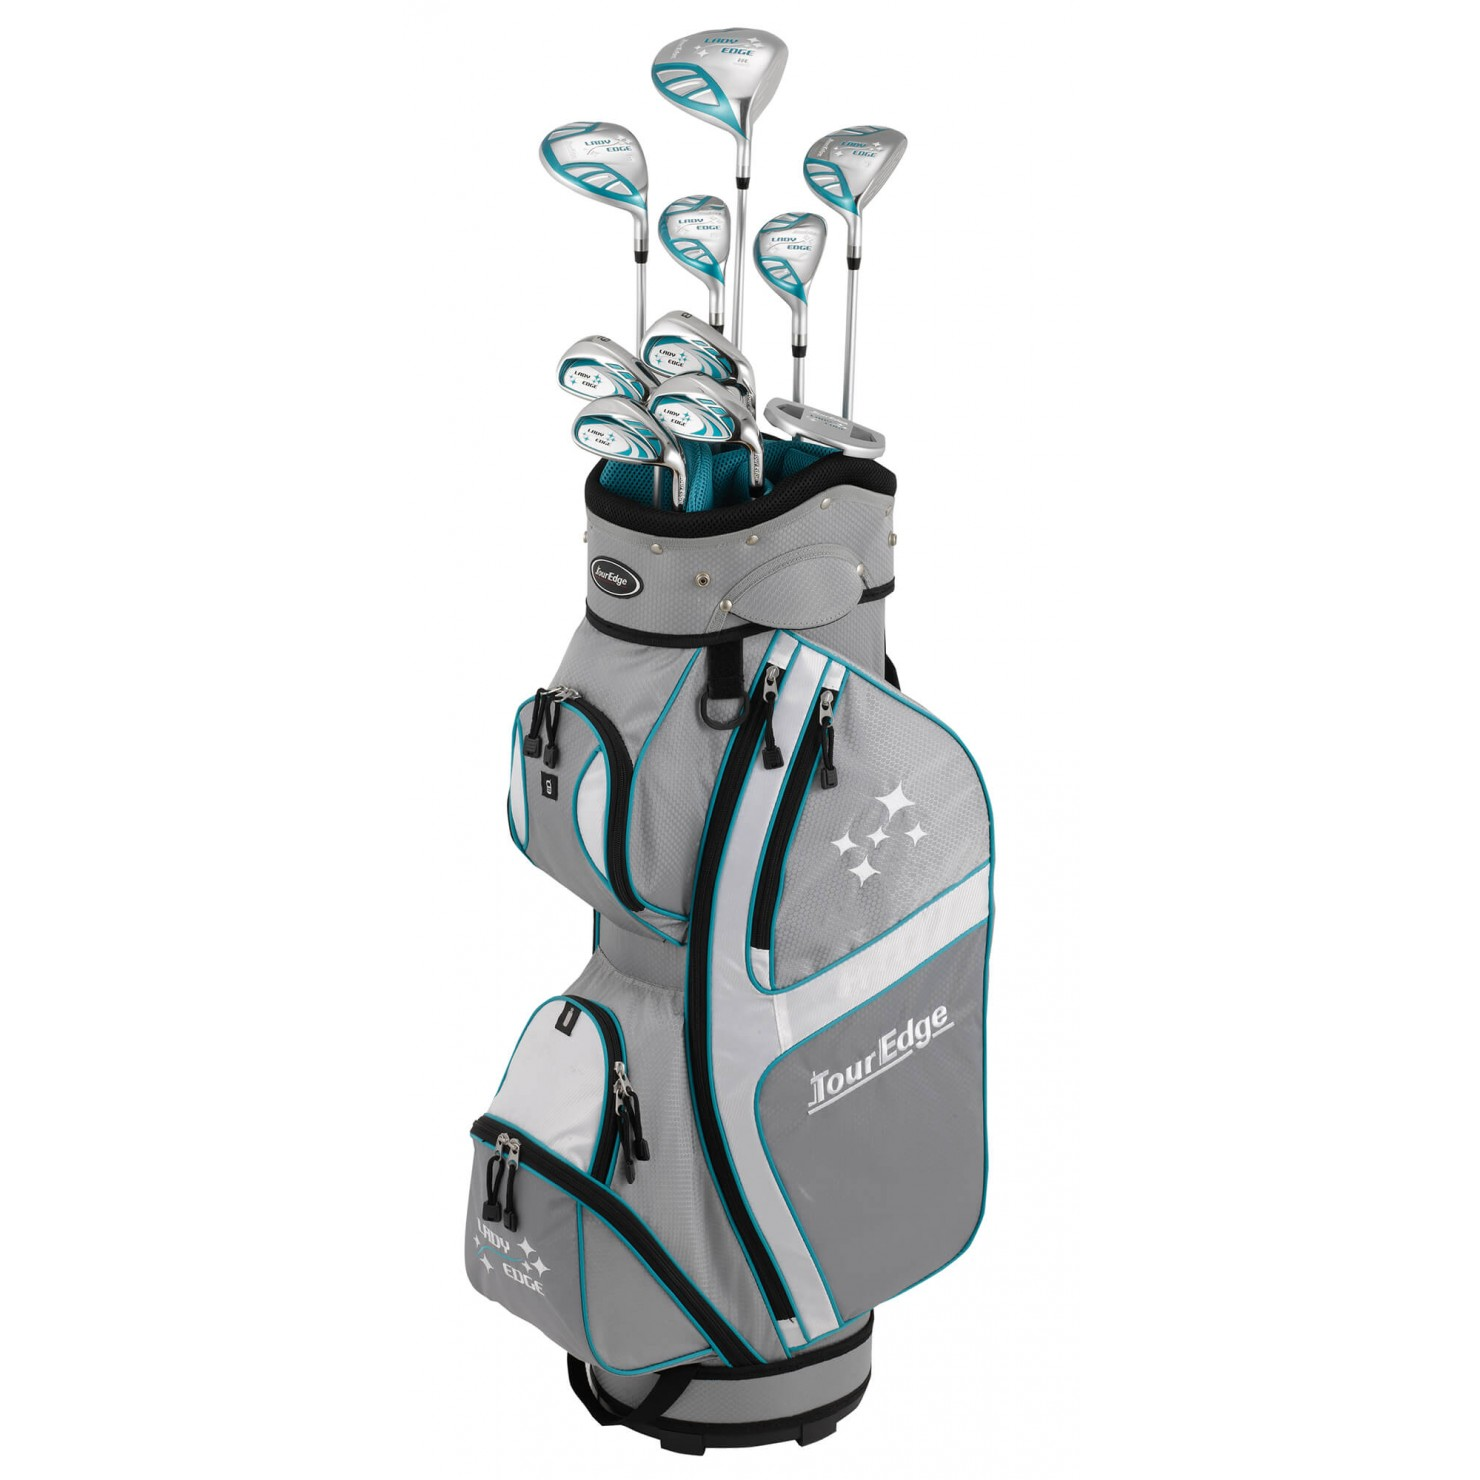 Tour Edge Women's Lady Edge Left Hand Complete Set